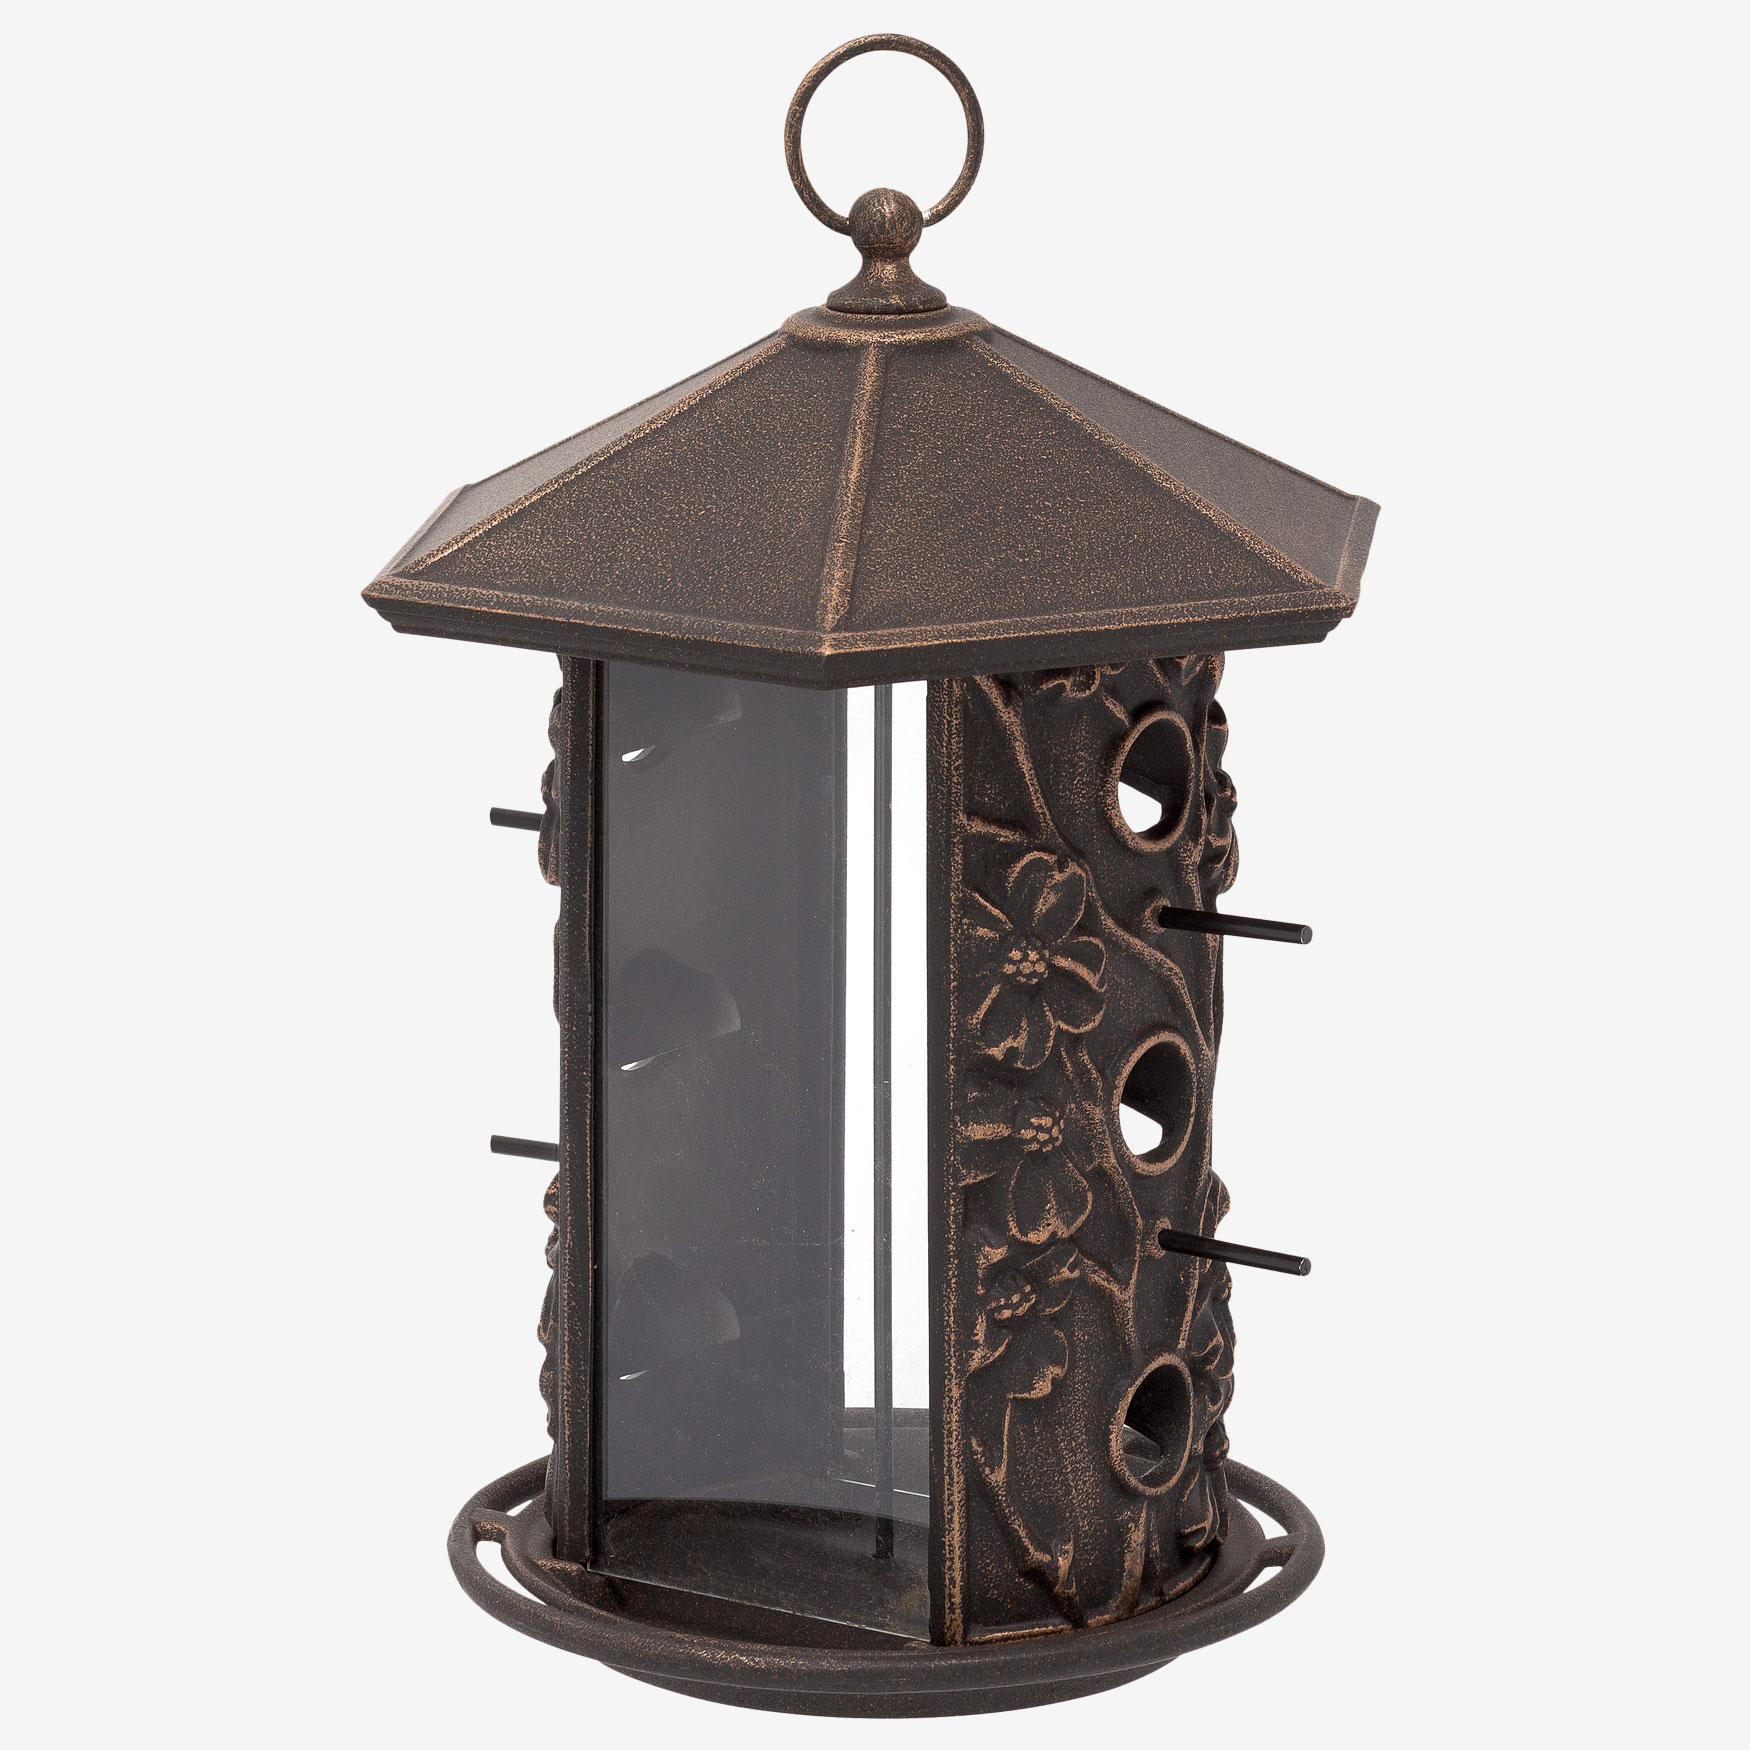 Dogwood Birdfeeder, OIL RUBBED BRONZE